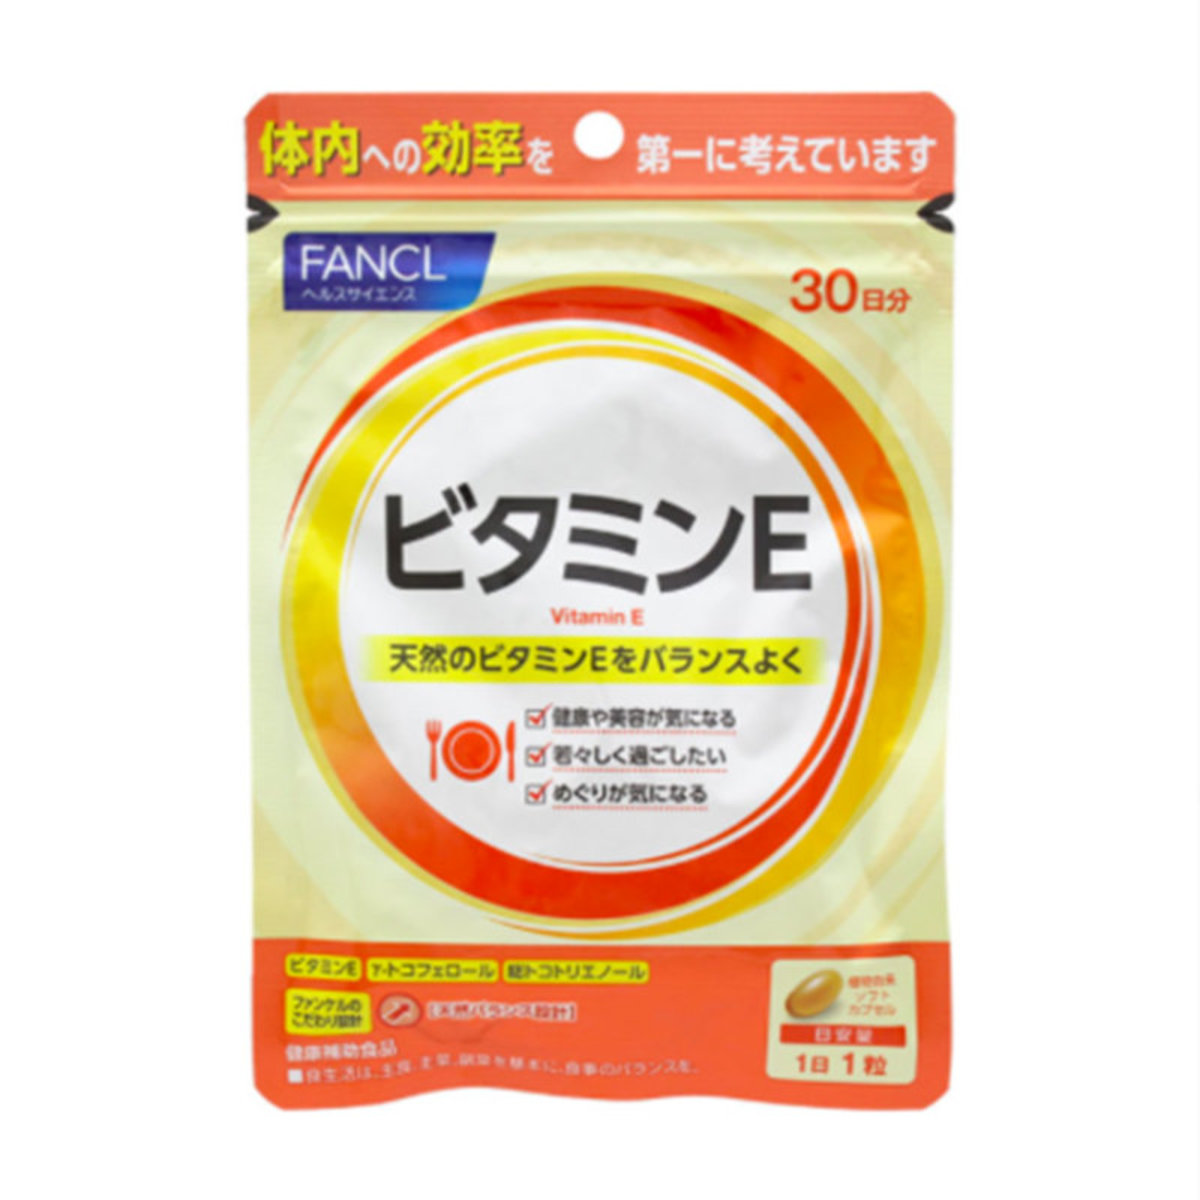 (New Package) Vitamin E 30 tablets (30 Days)(Parallel Imports Product)